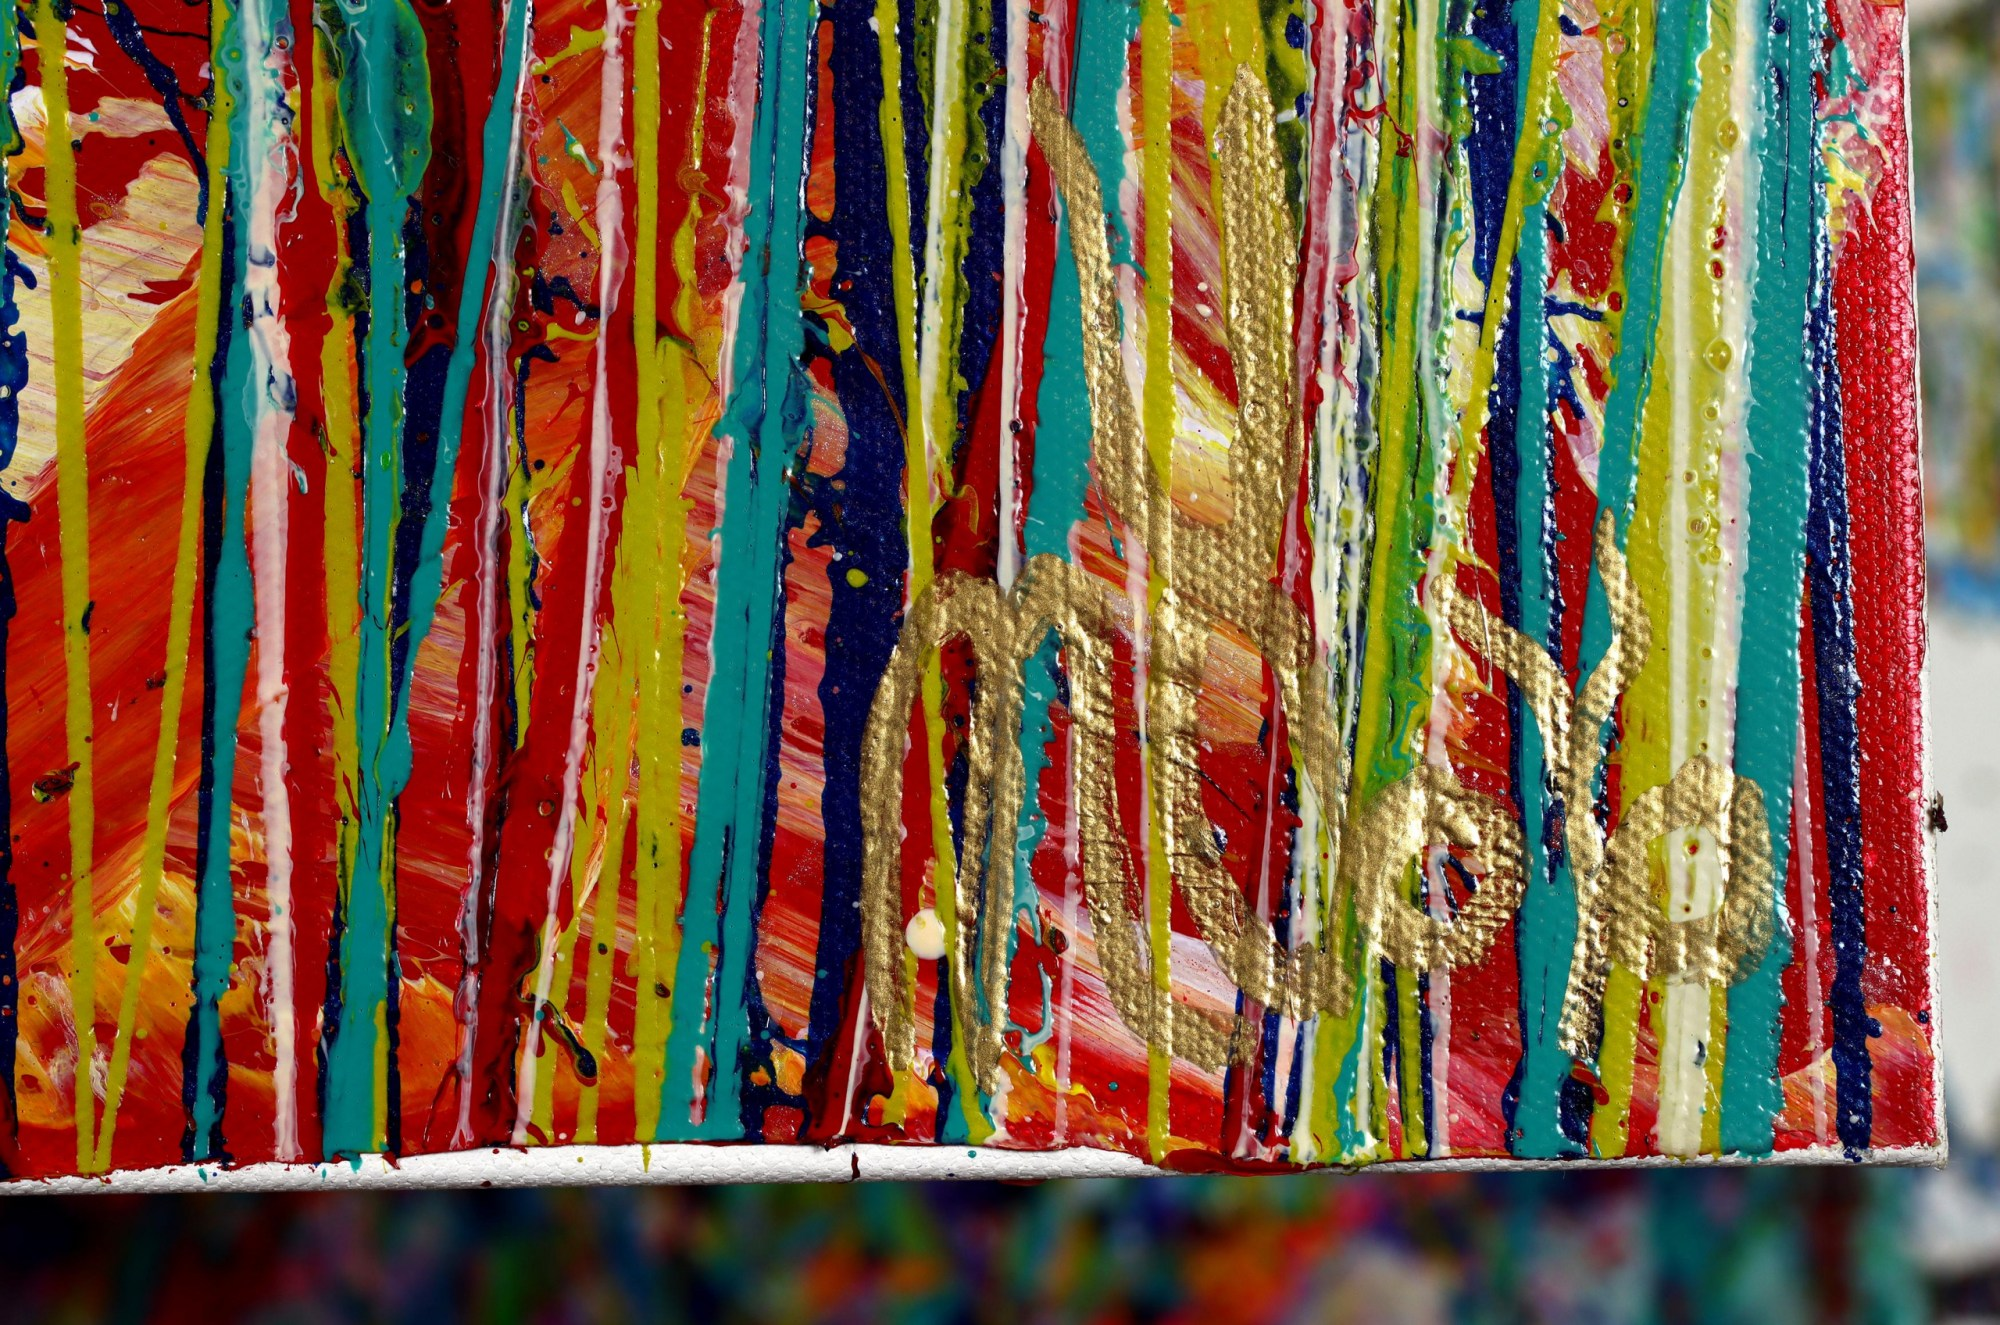 SIGNATURE / Autumn Motion (2021) - Ready to Hang - 48x24 inches